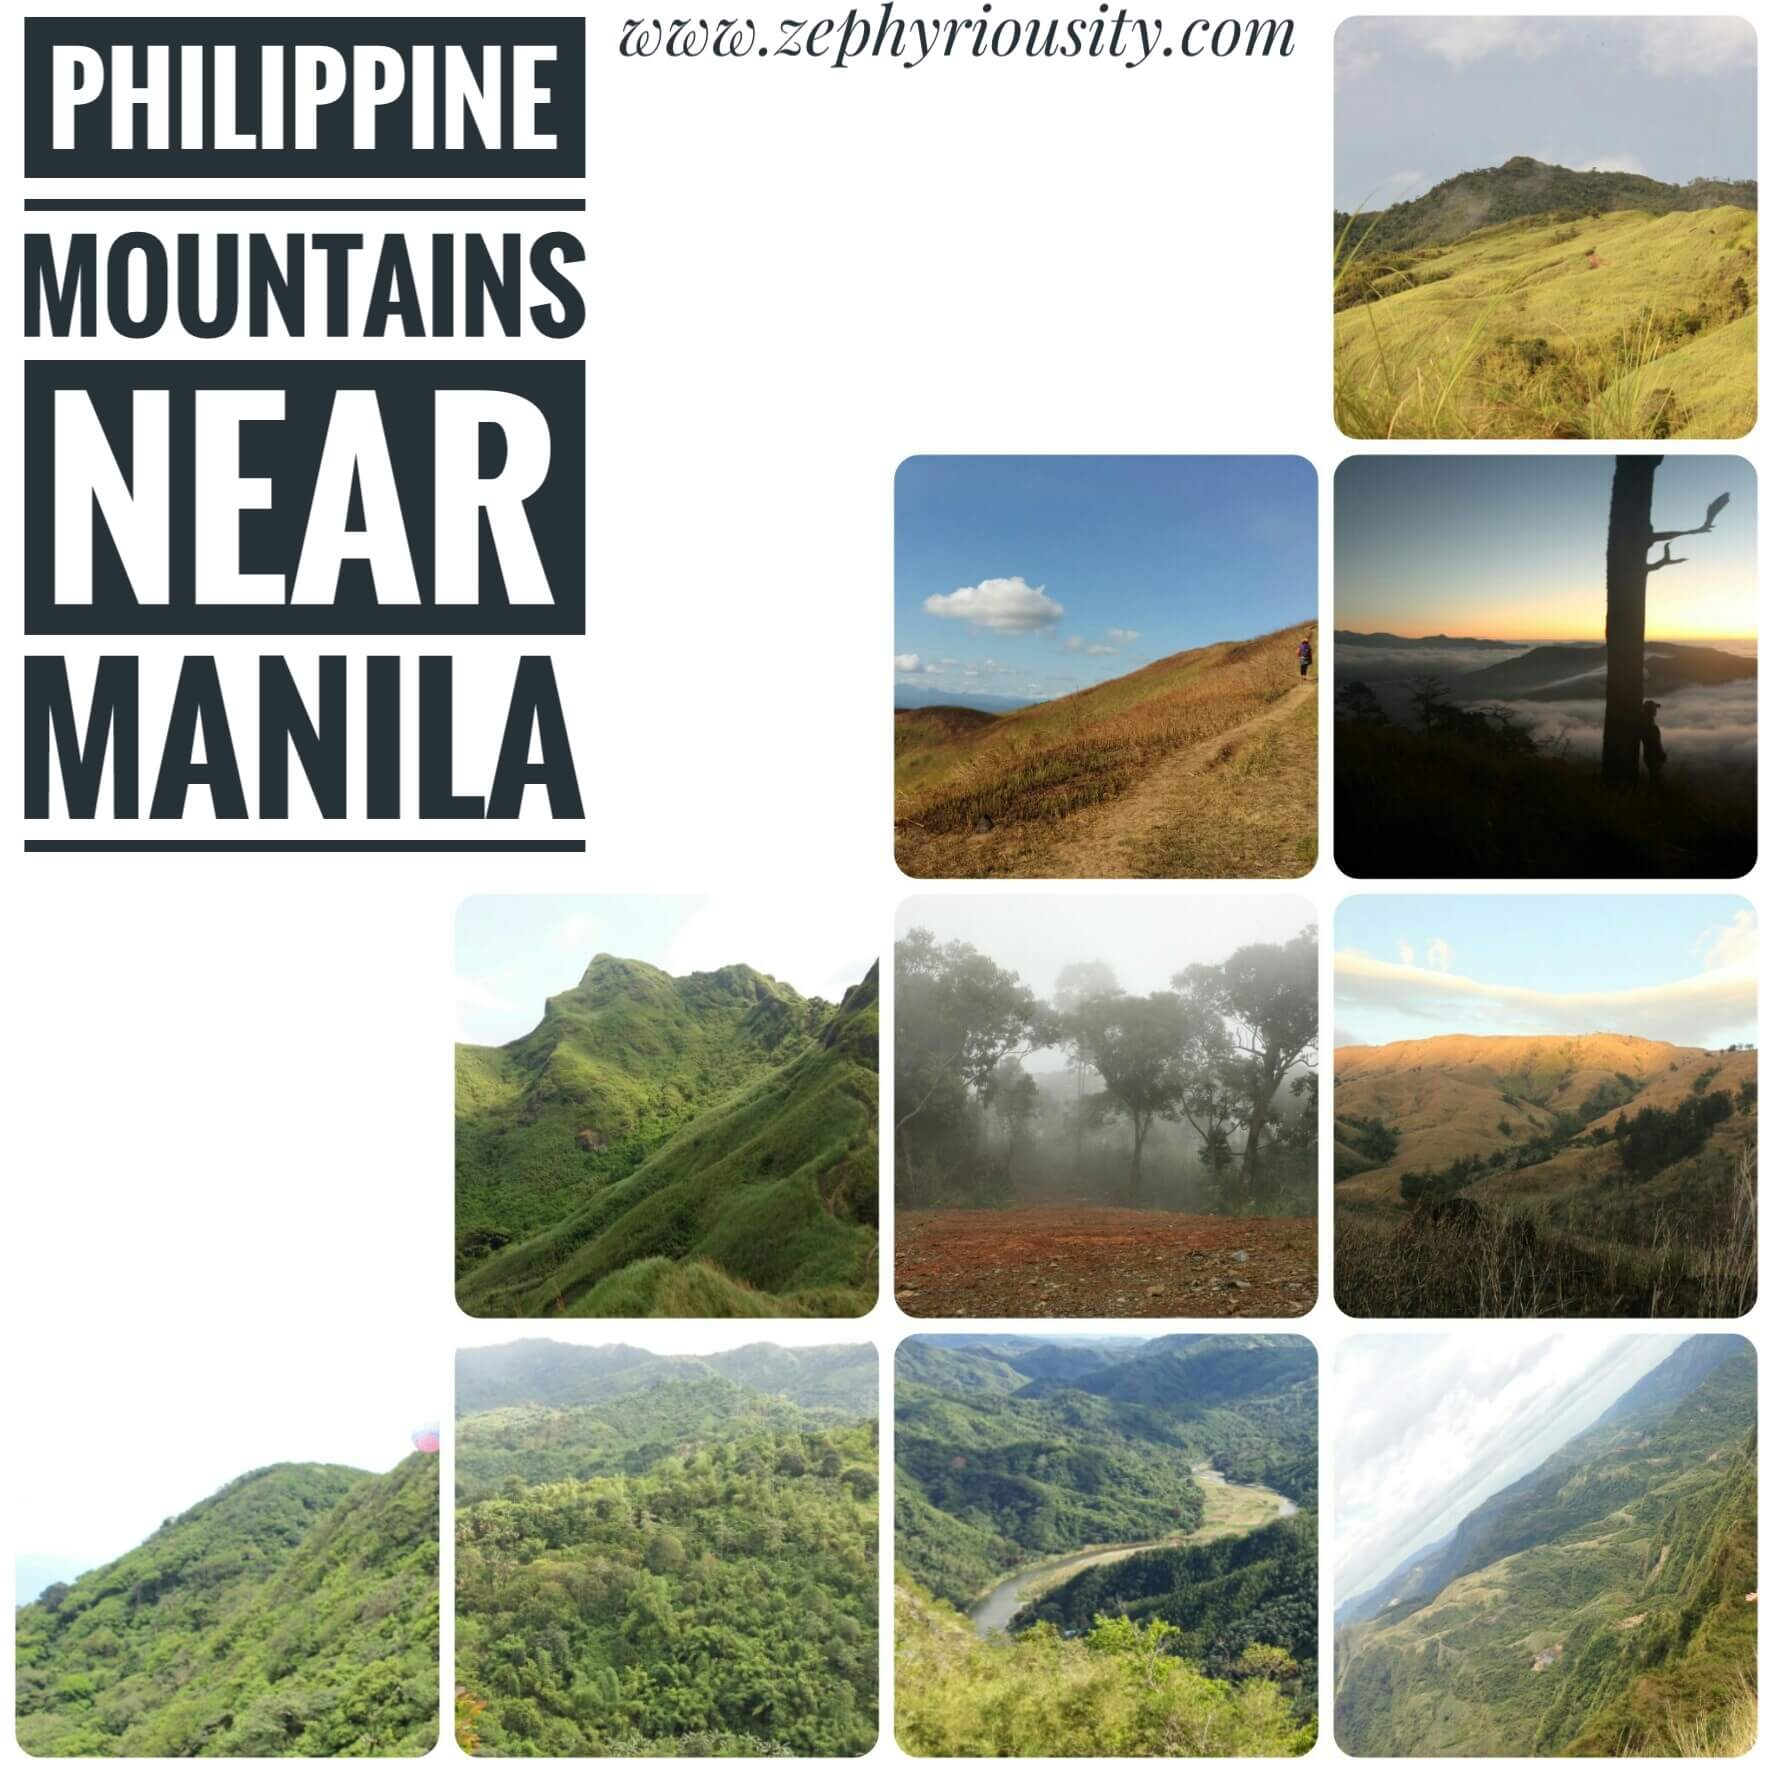 Philippine Mountains near Manila that I've Climbed